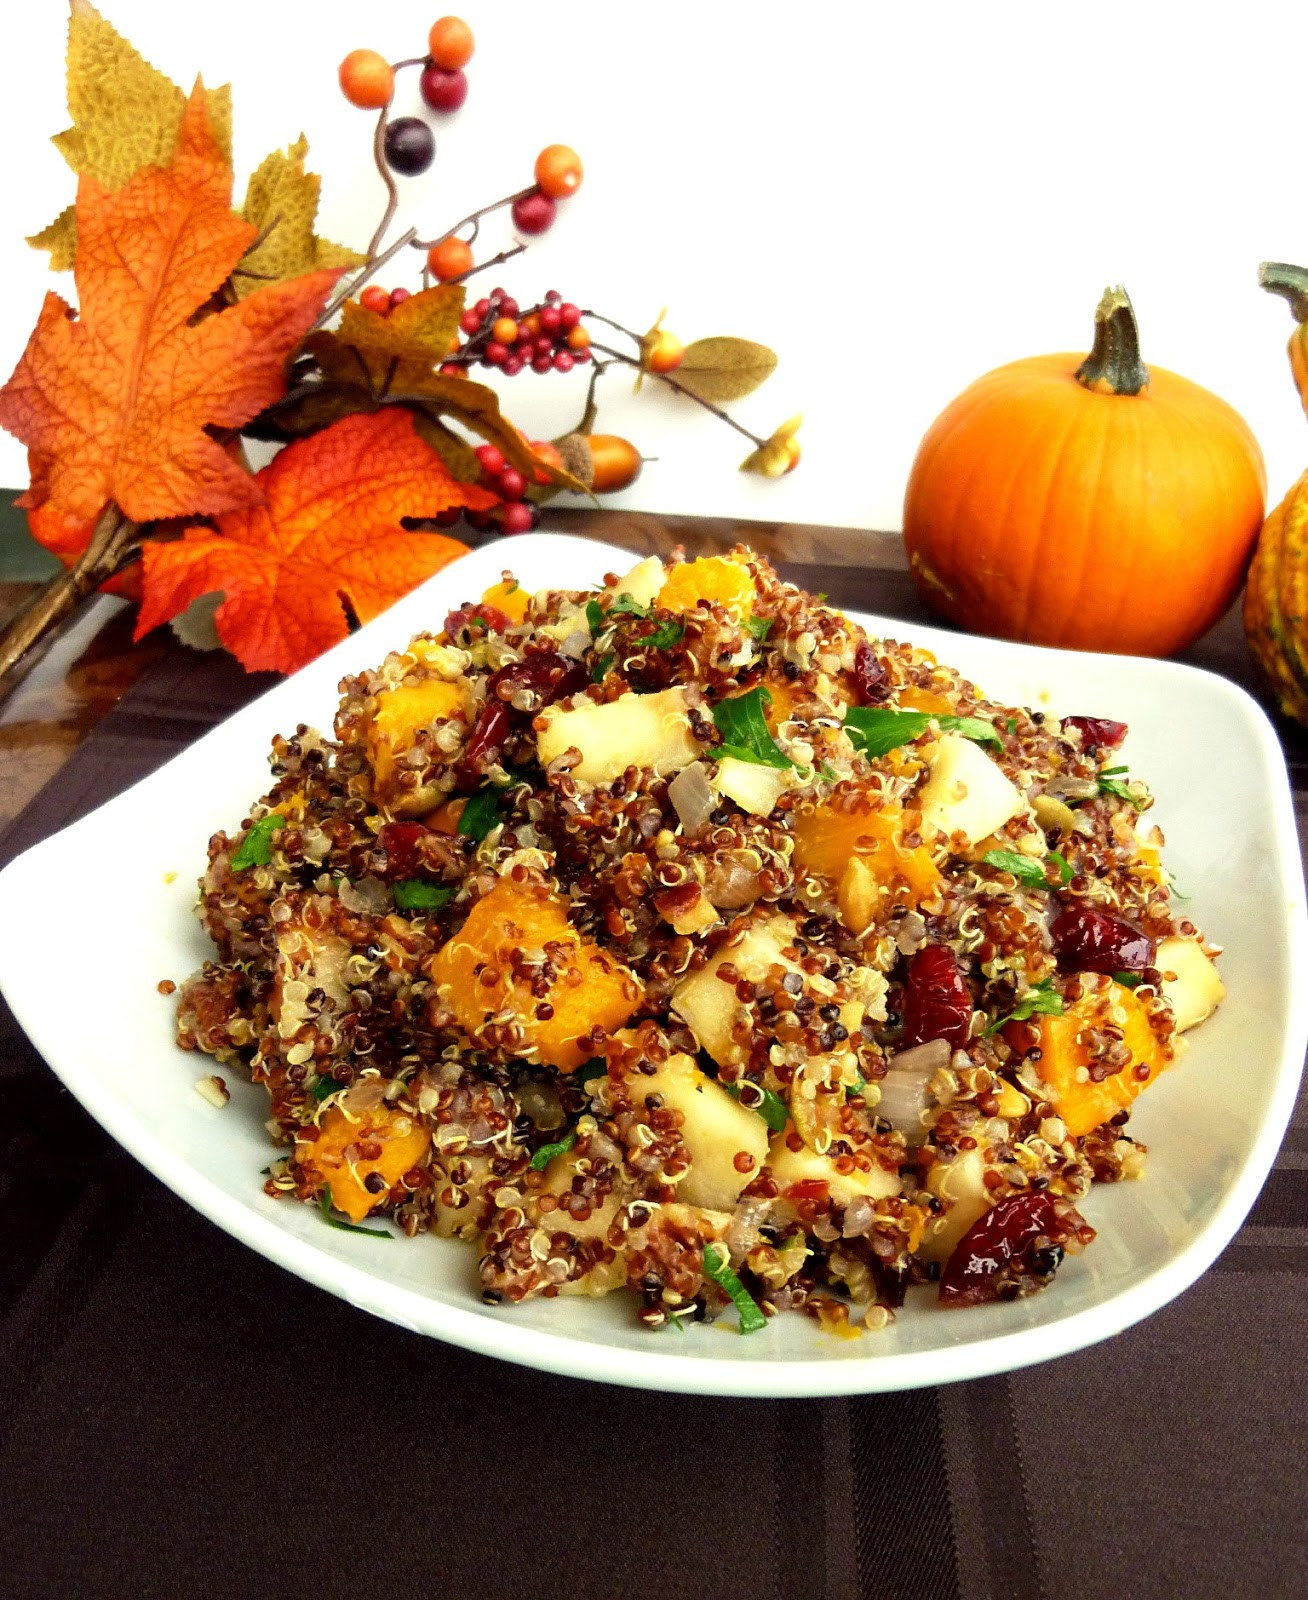 Vegetarian Dish For Thanksgiving  Vanilla & Spice Recipes for a Ve arian Thanksgiving